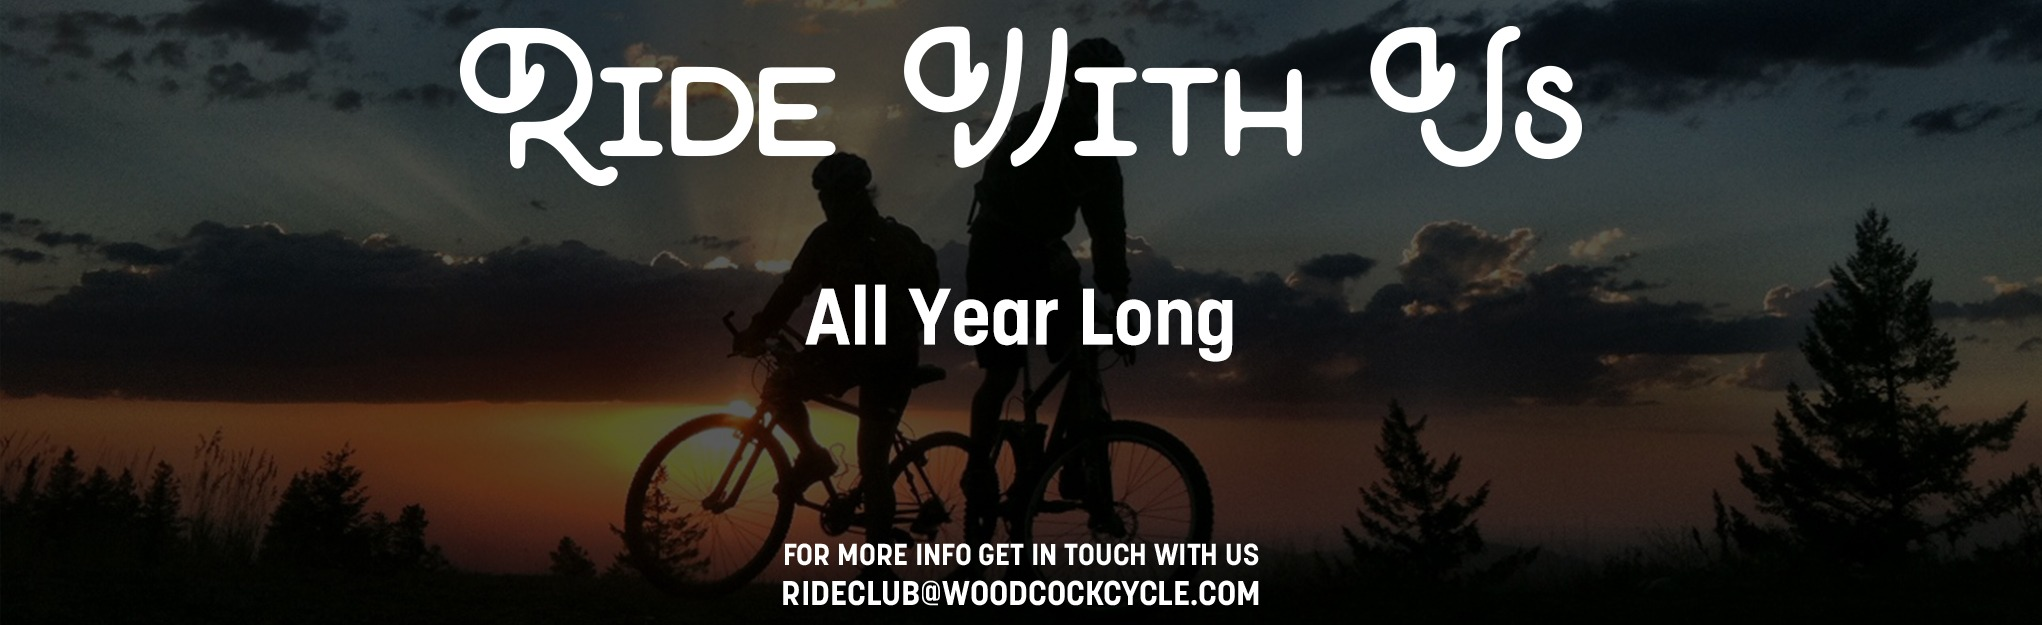 Ride with Us - All year long